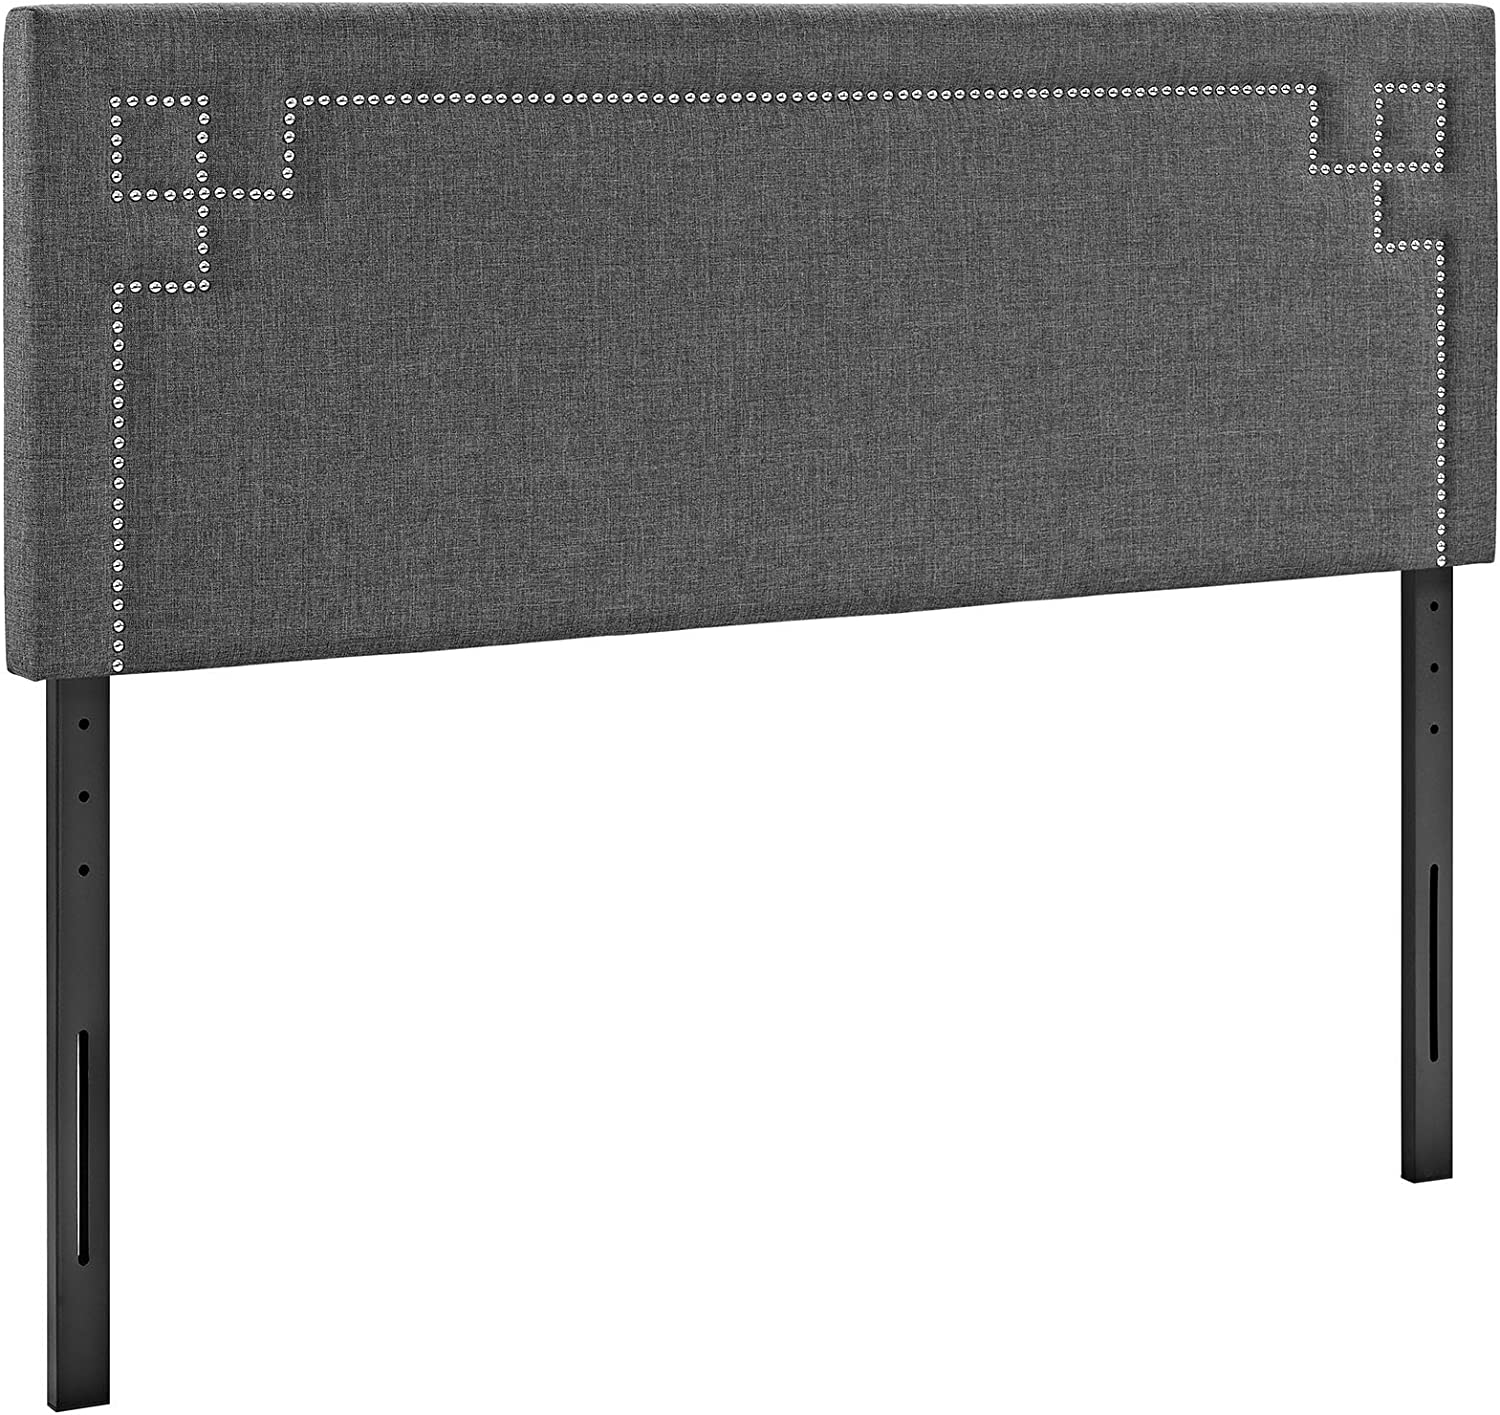 Modway Josie Linen Fabric Upholstered Gray Headboard in Gray with Nailhead Accents